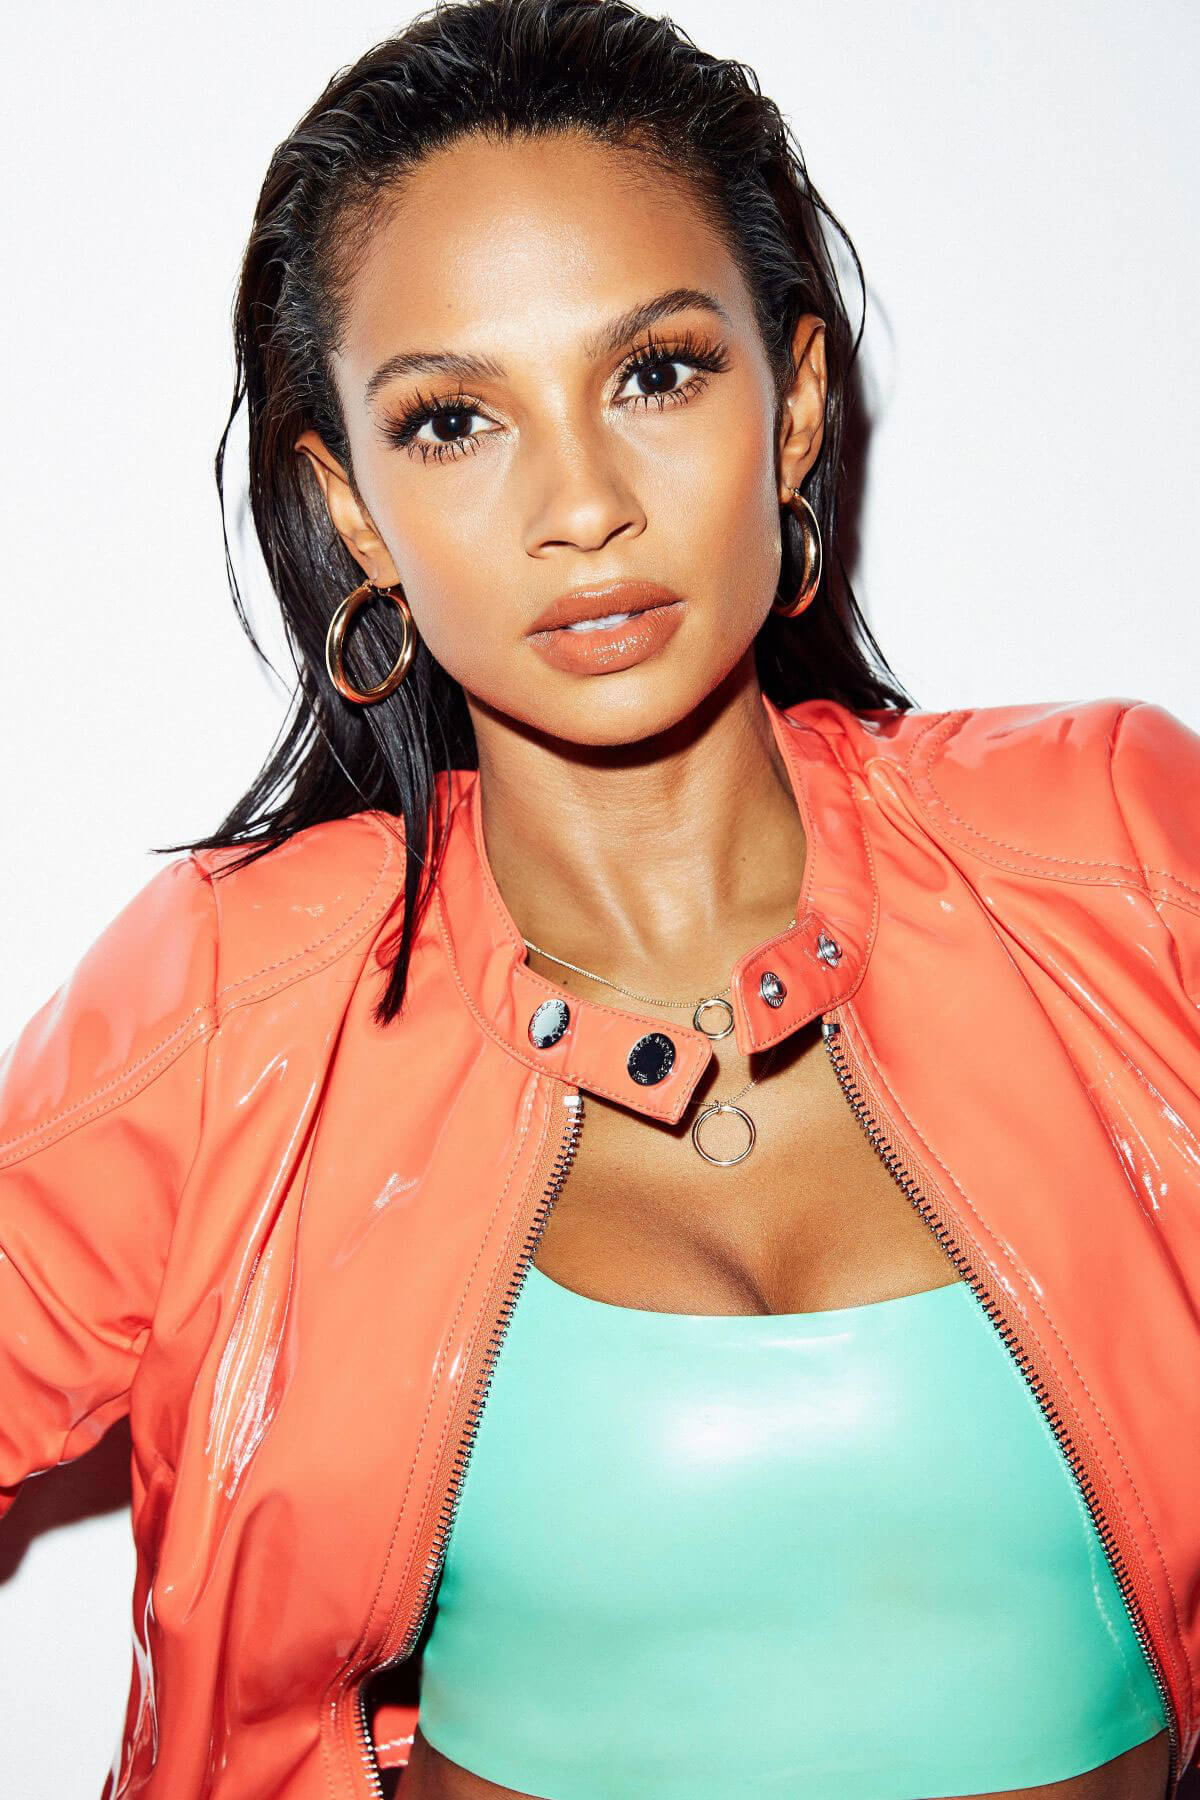 Alesha Dixon by Zoe McConnell Photoshoot, May 2018 14